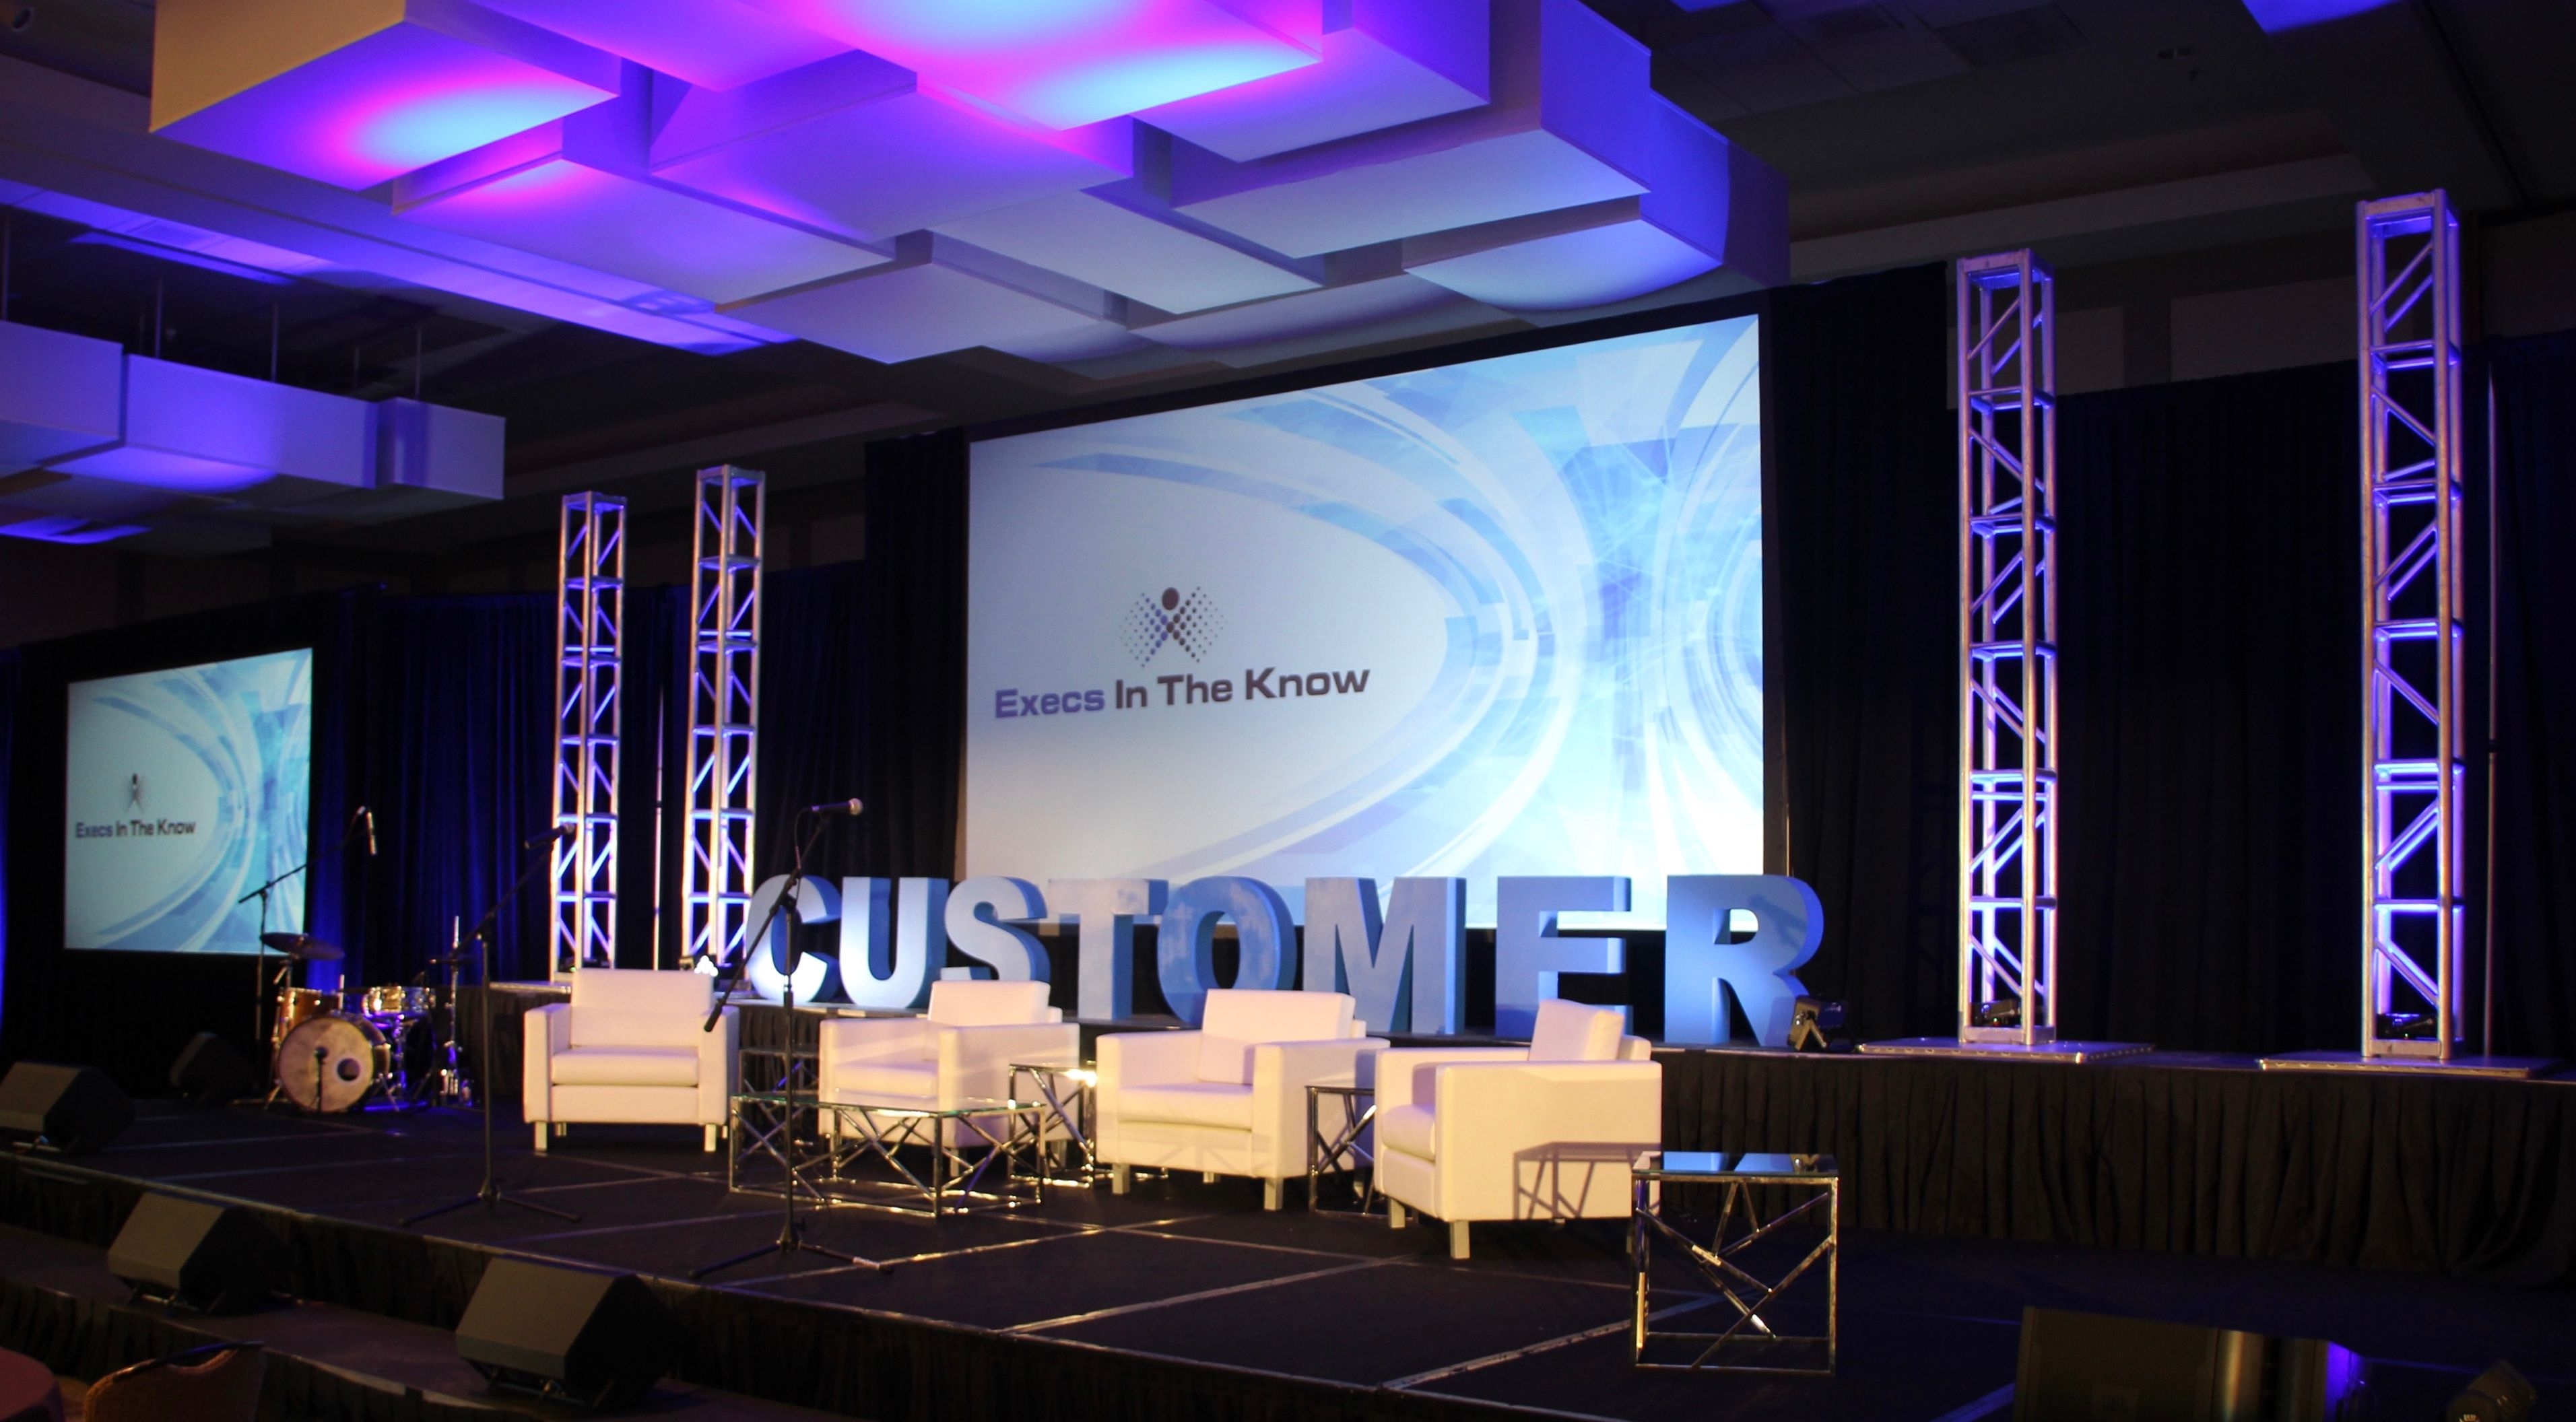 Execs in the know conference stage